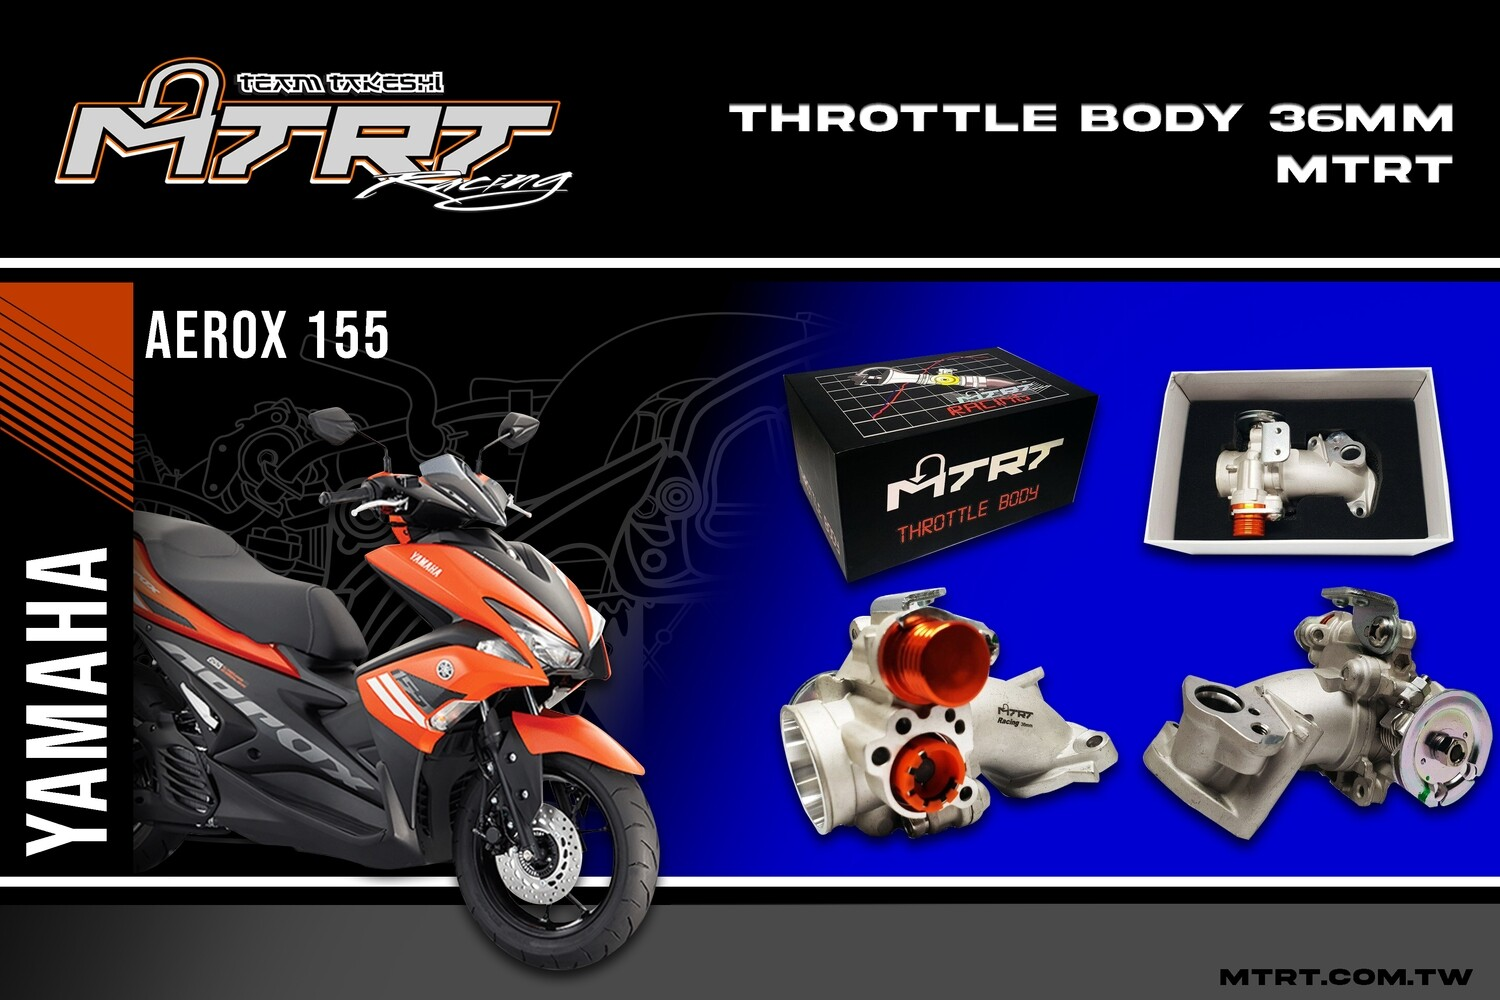 36MM THROTTLE BODY AEROX155/NVX without TPS MTRT